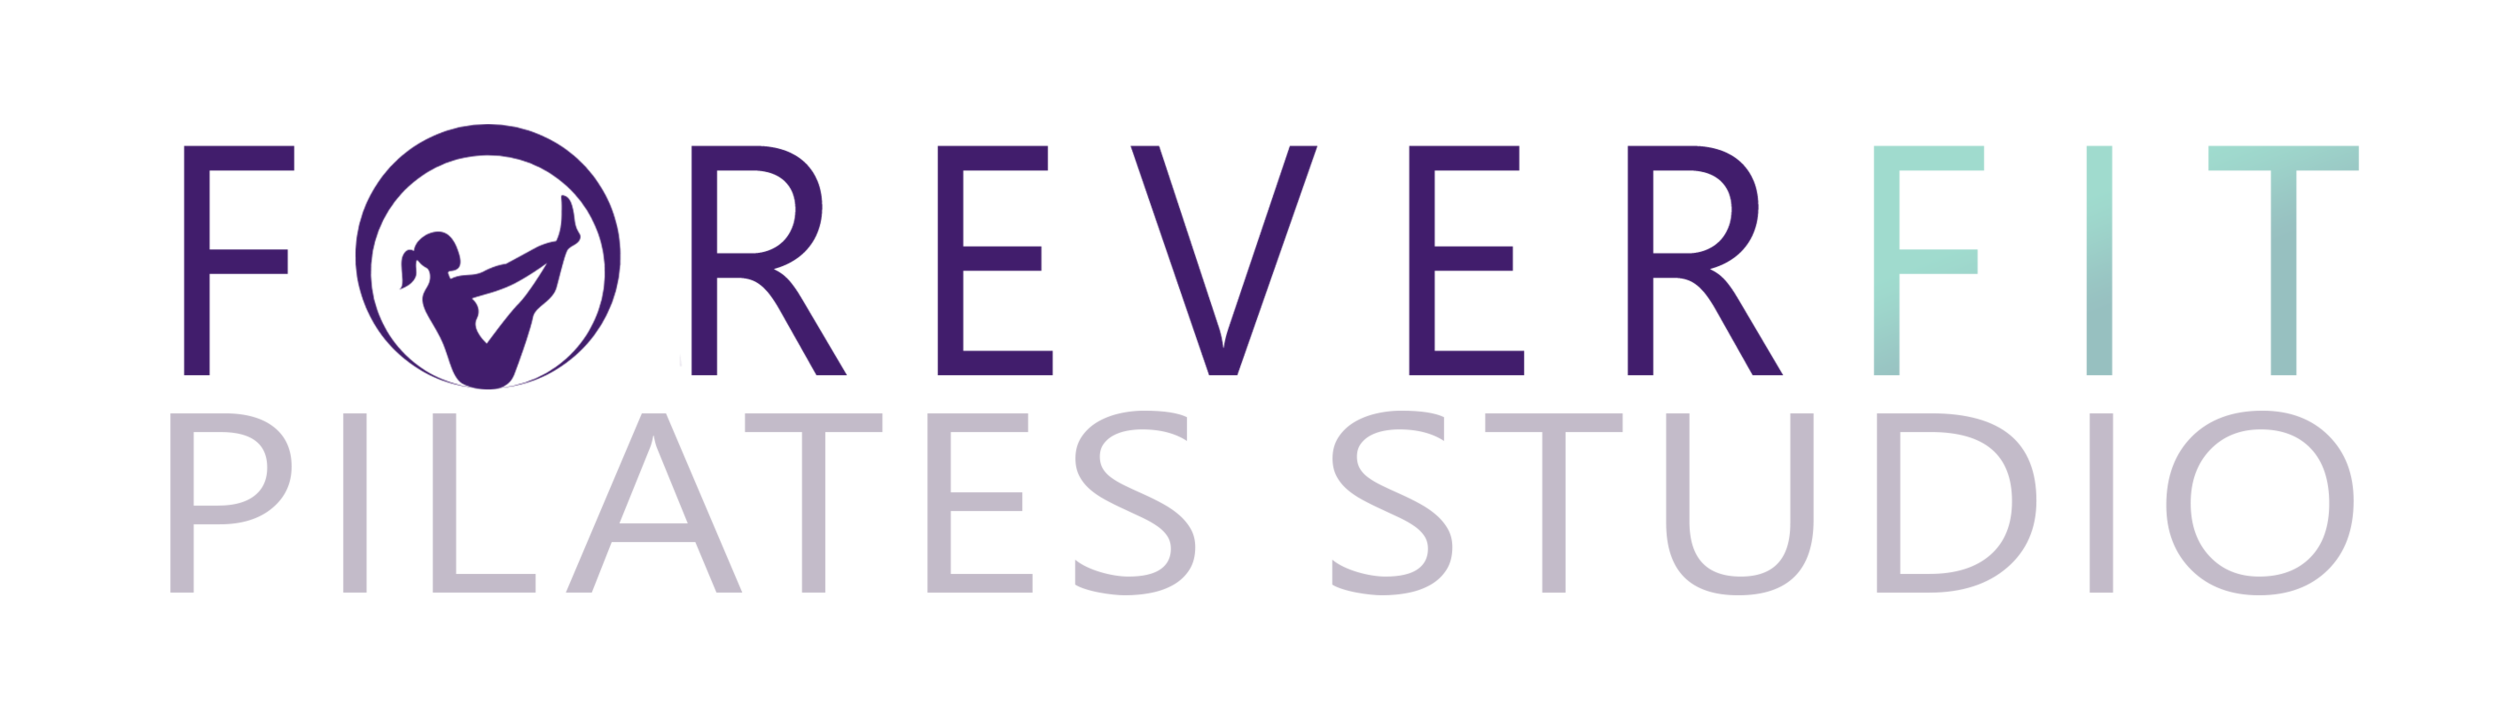 logo clear background.png